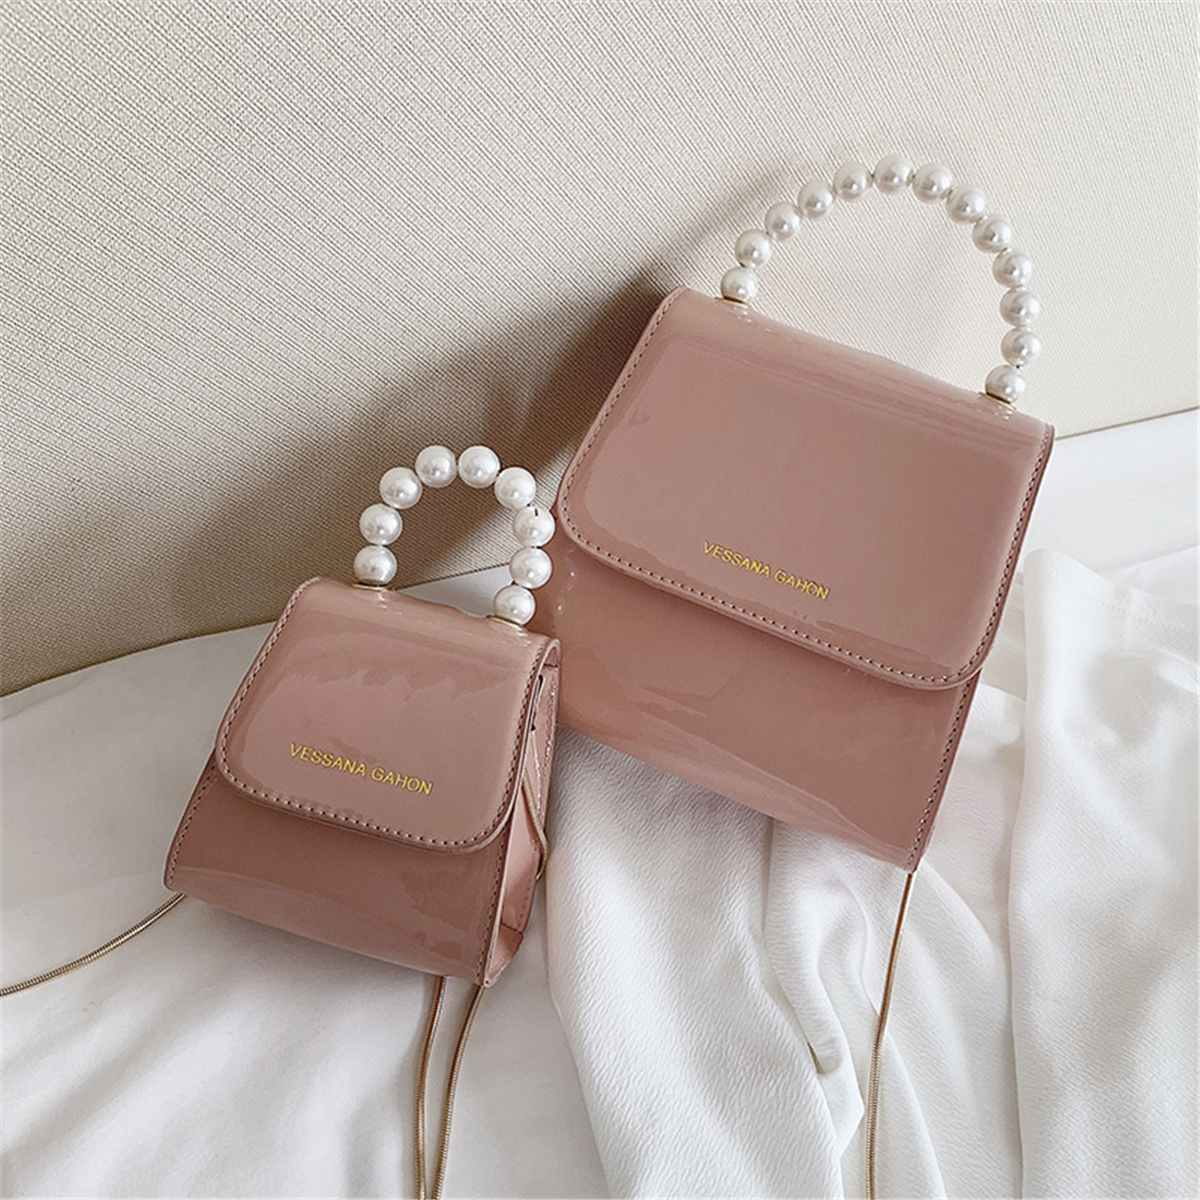 Girls Evening Crossbody Bags Mini Cute Tote Fashion Pearl Handle Chain Bag Women Shoulder Bag PU Leather Handbag Feminine Bolsa